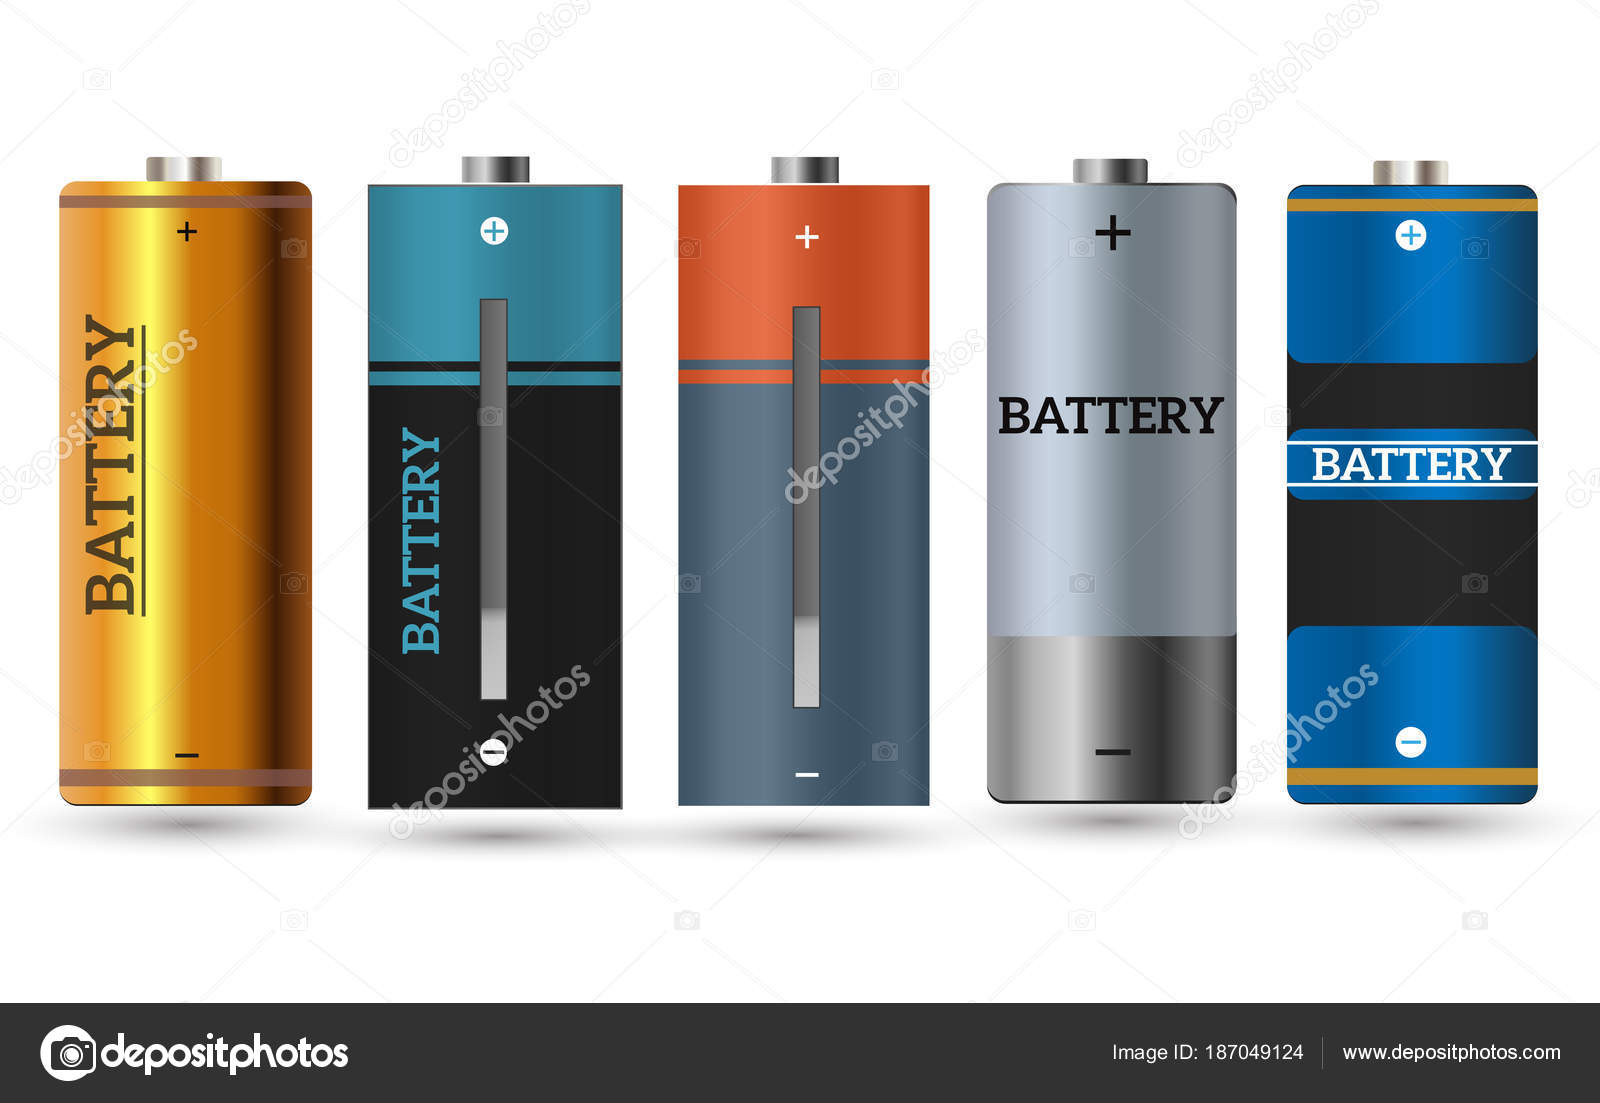 What are battery batteries finger, and what is it 13